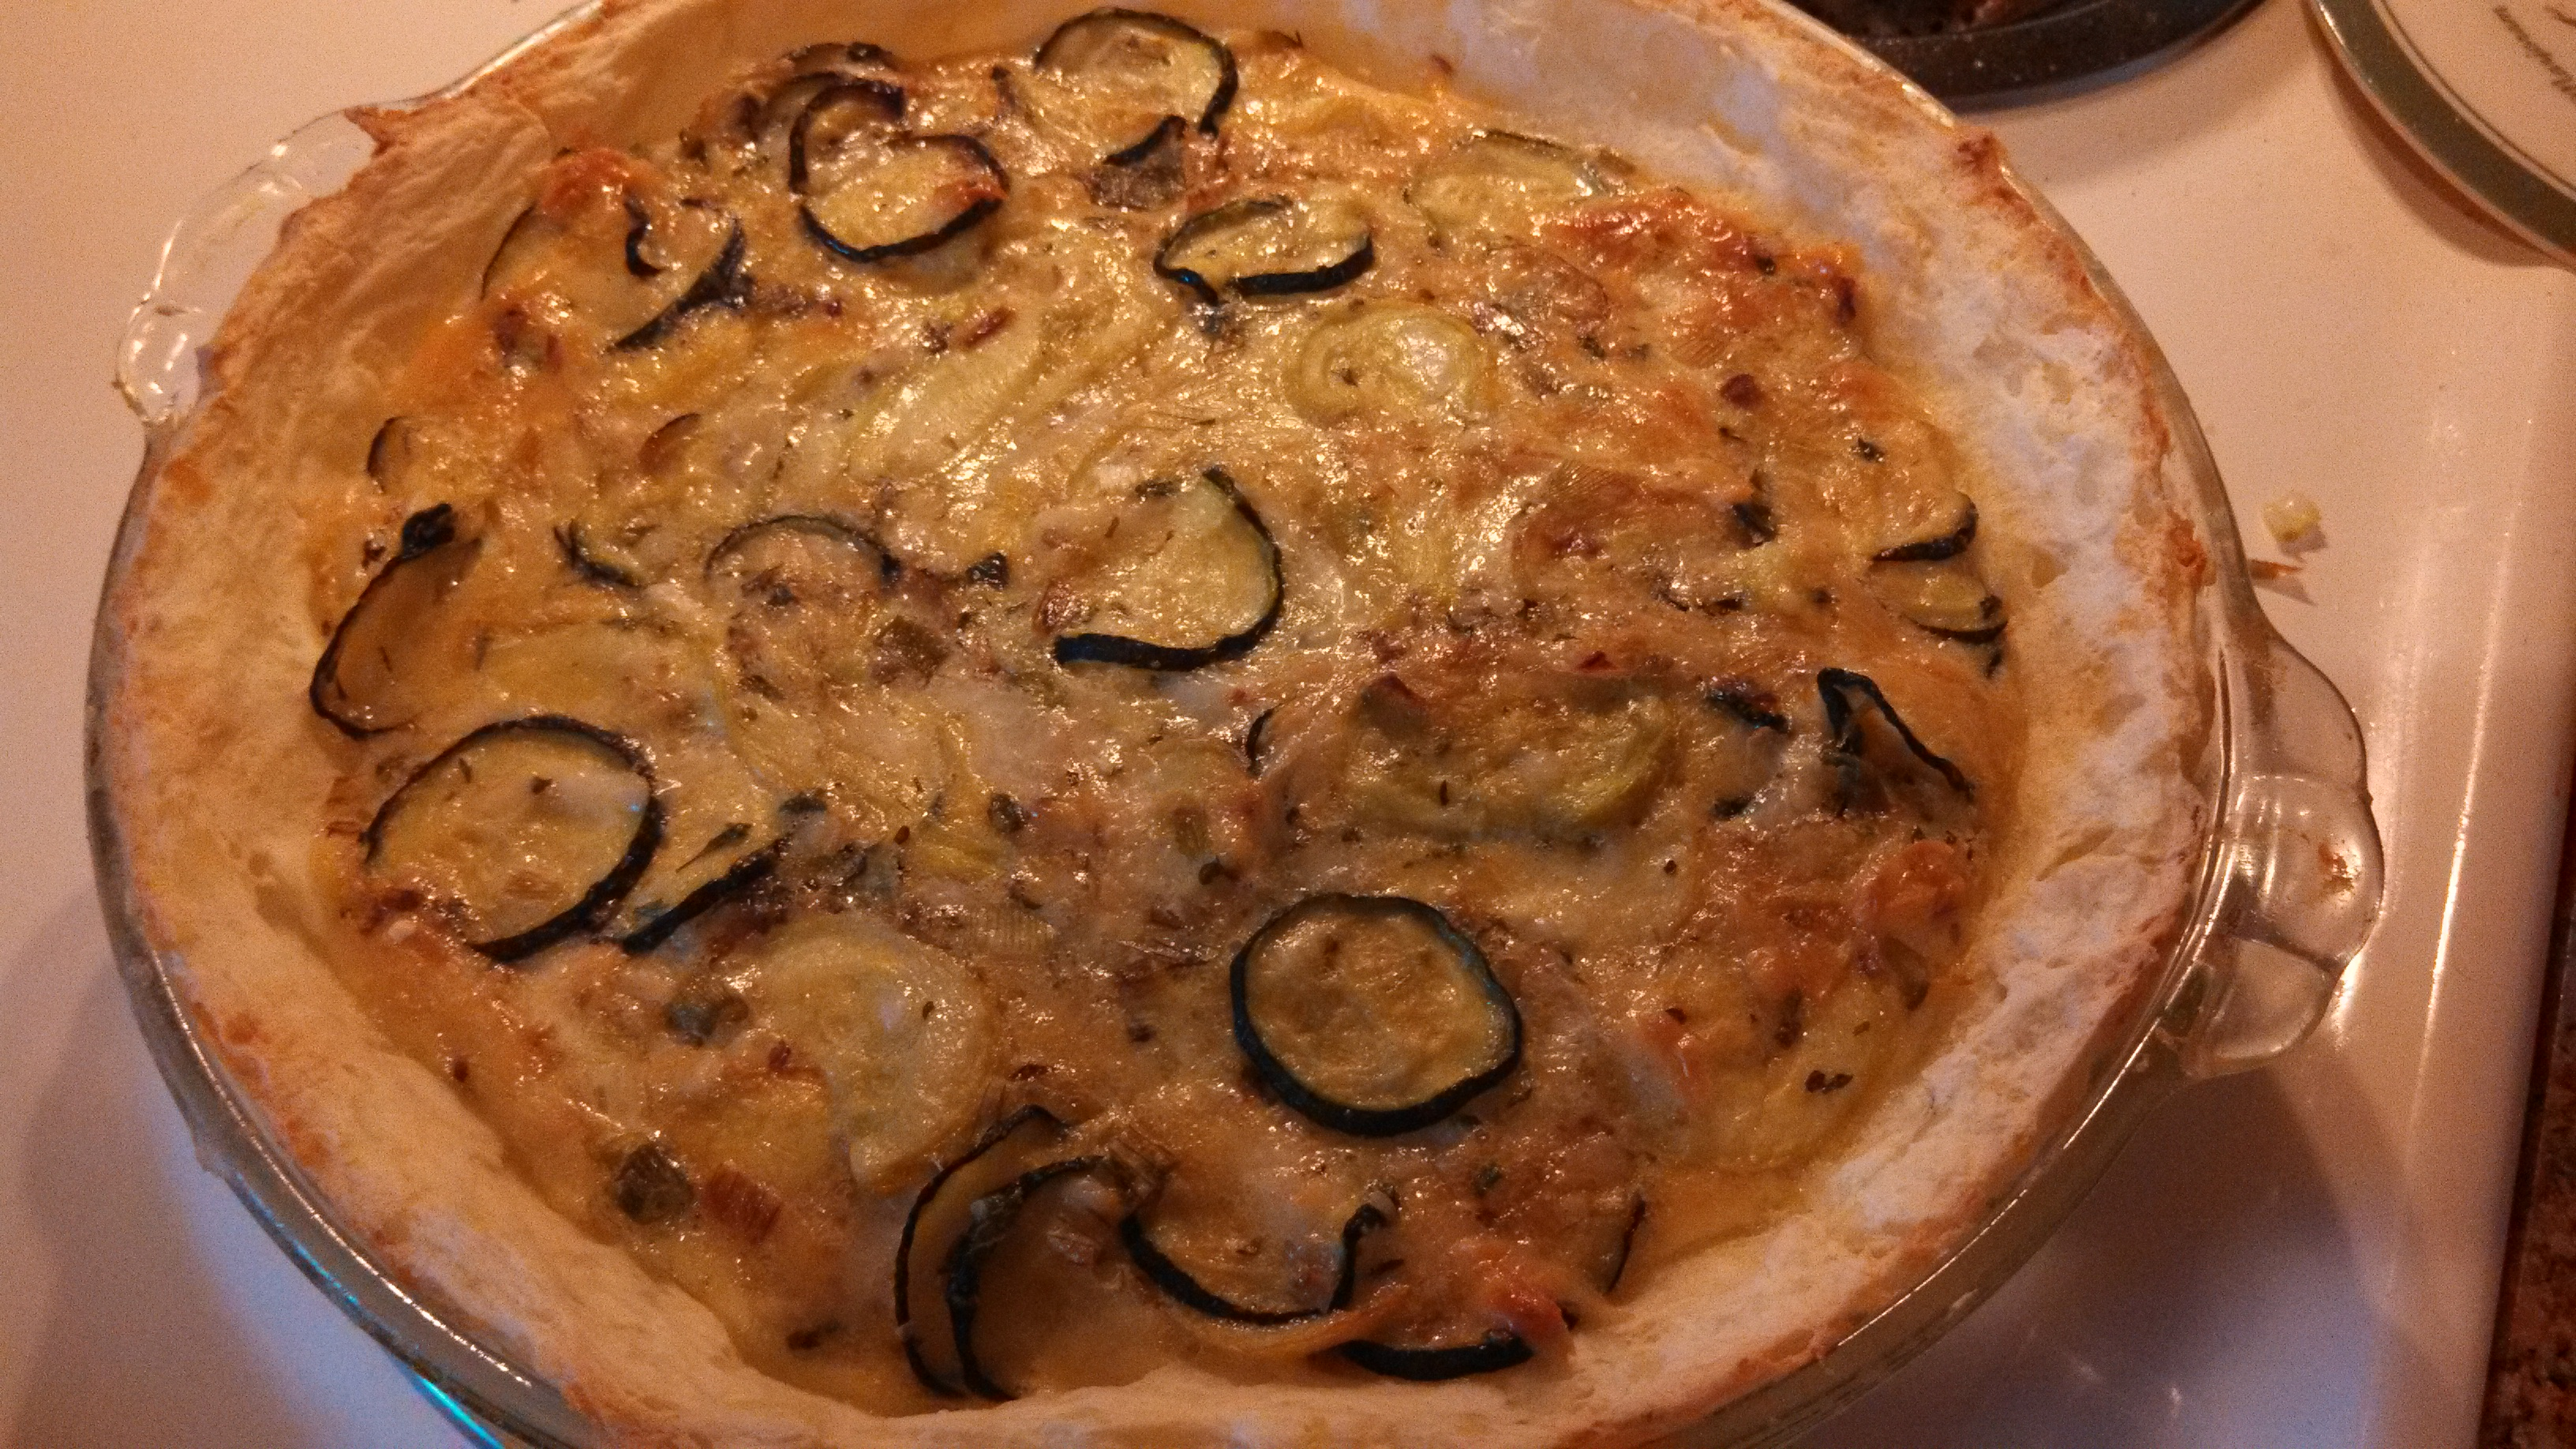 ... Yellow Squash Quiche with Mashed Potato Crust | My Gems of Parenting